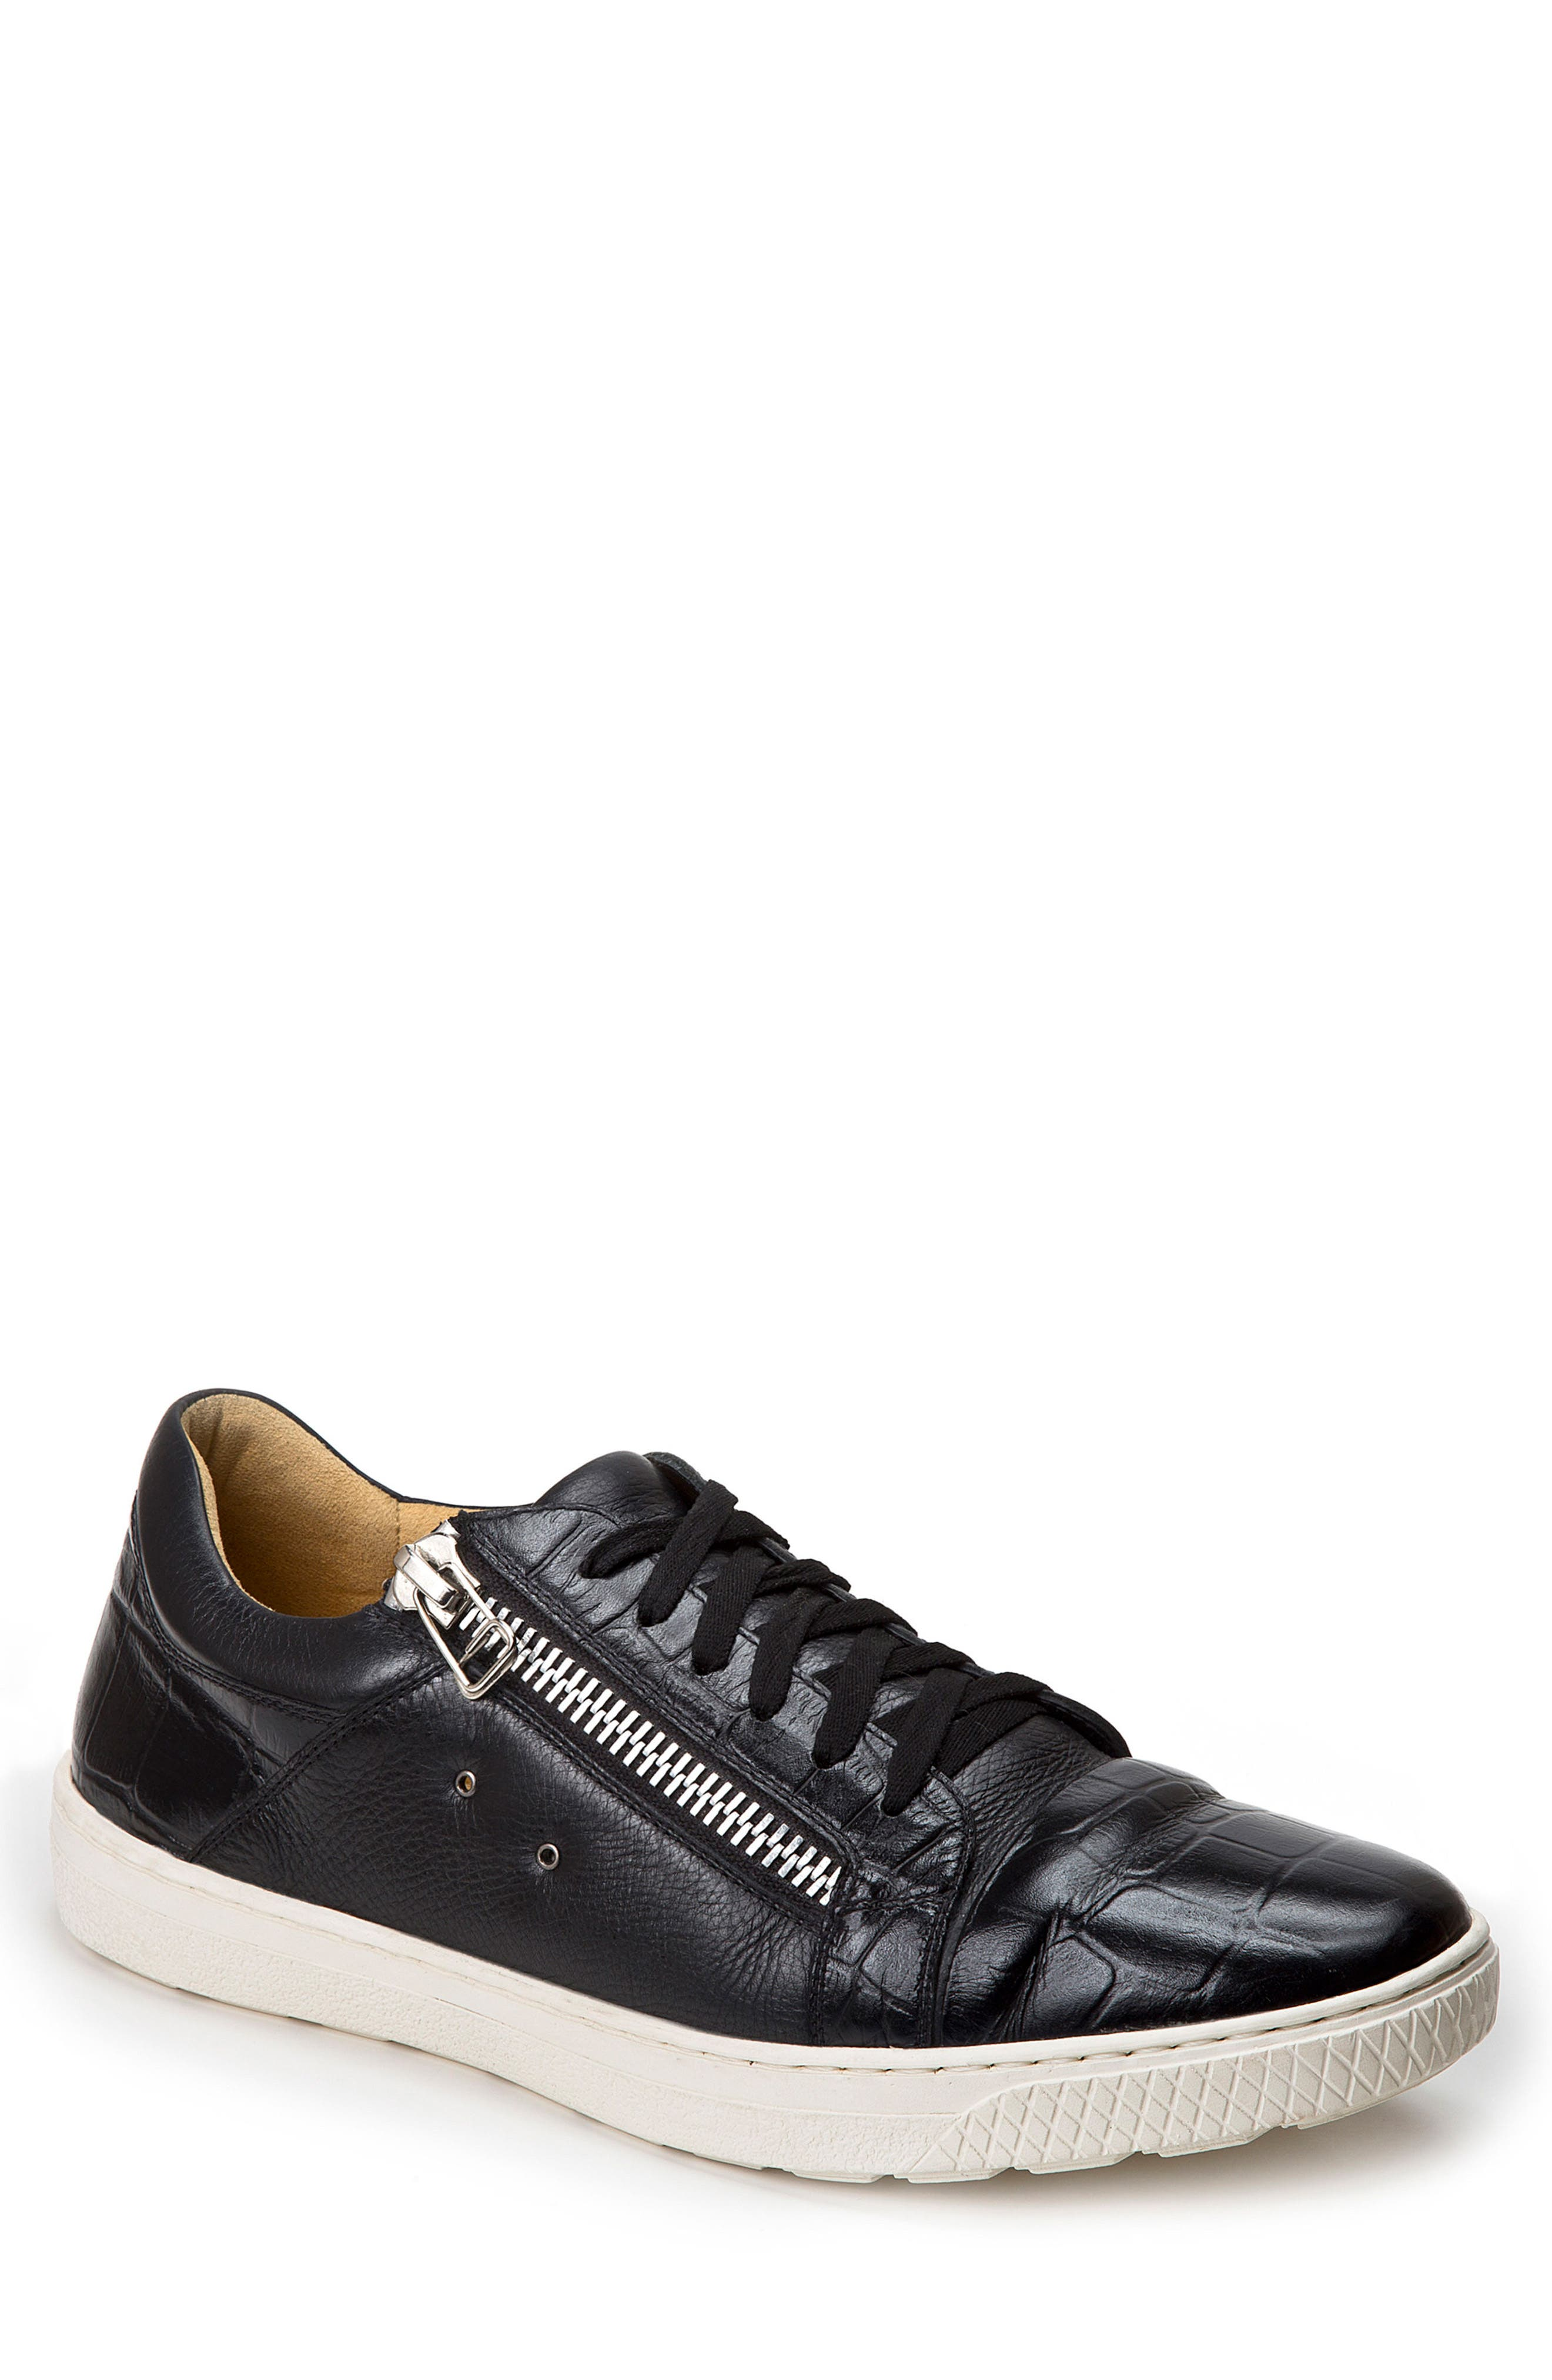 Cassius Side Zip Sneaker,                         Main,                         color, Black Leather